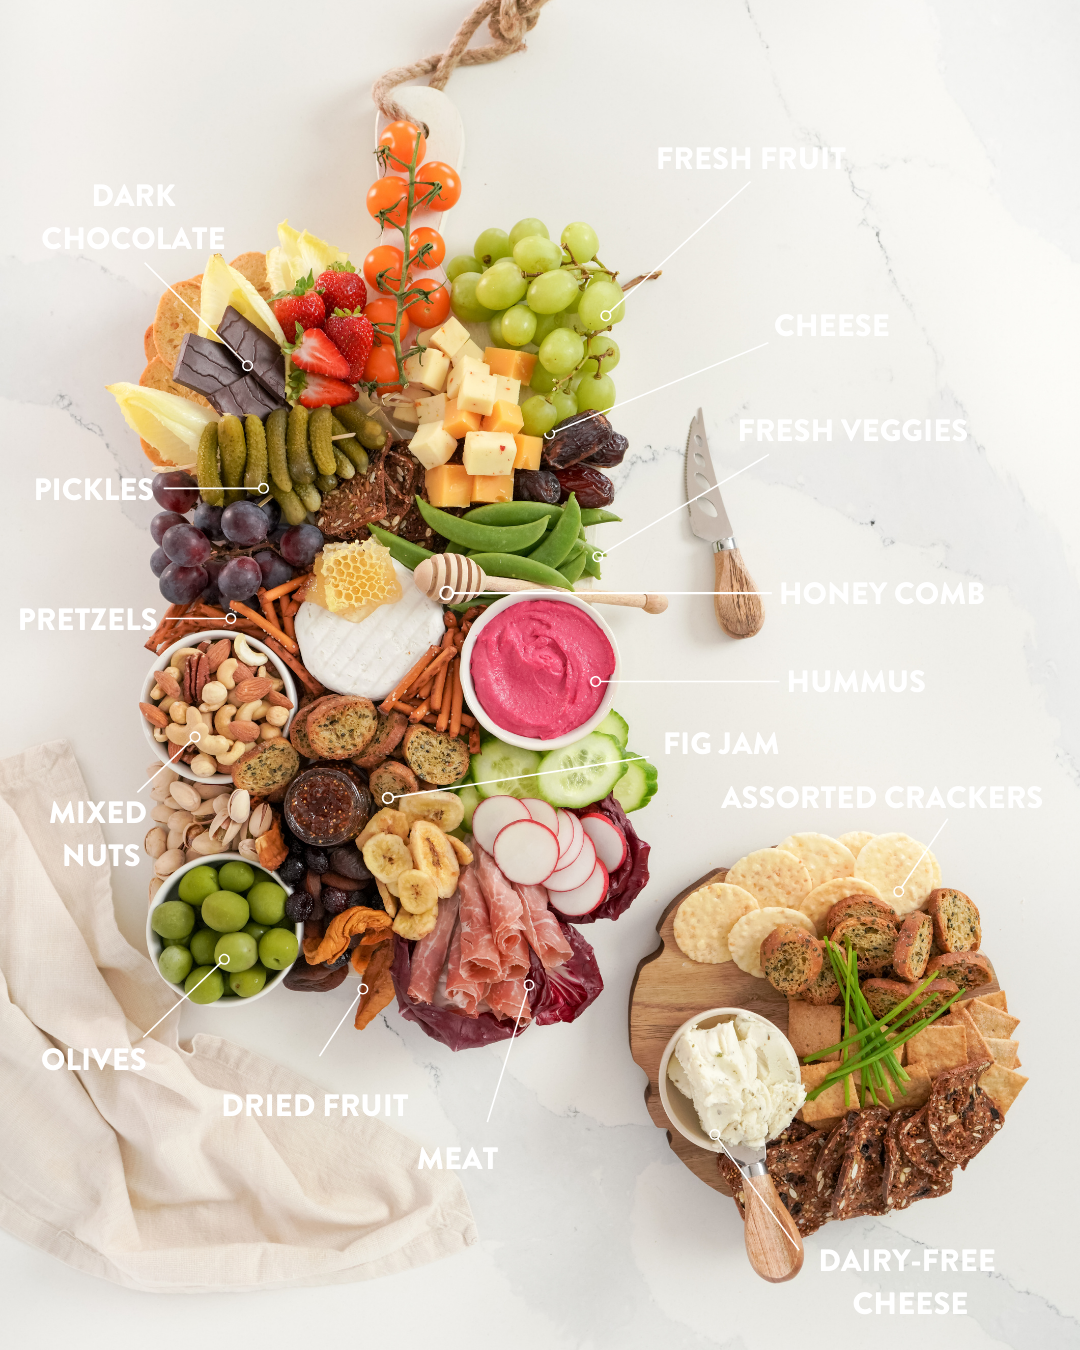 a grazing board of finger foods on a white table cloth, with white text around explaining what's on the board